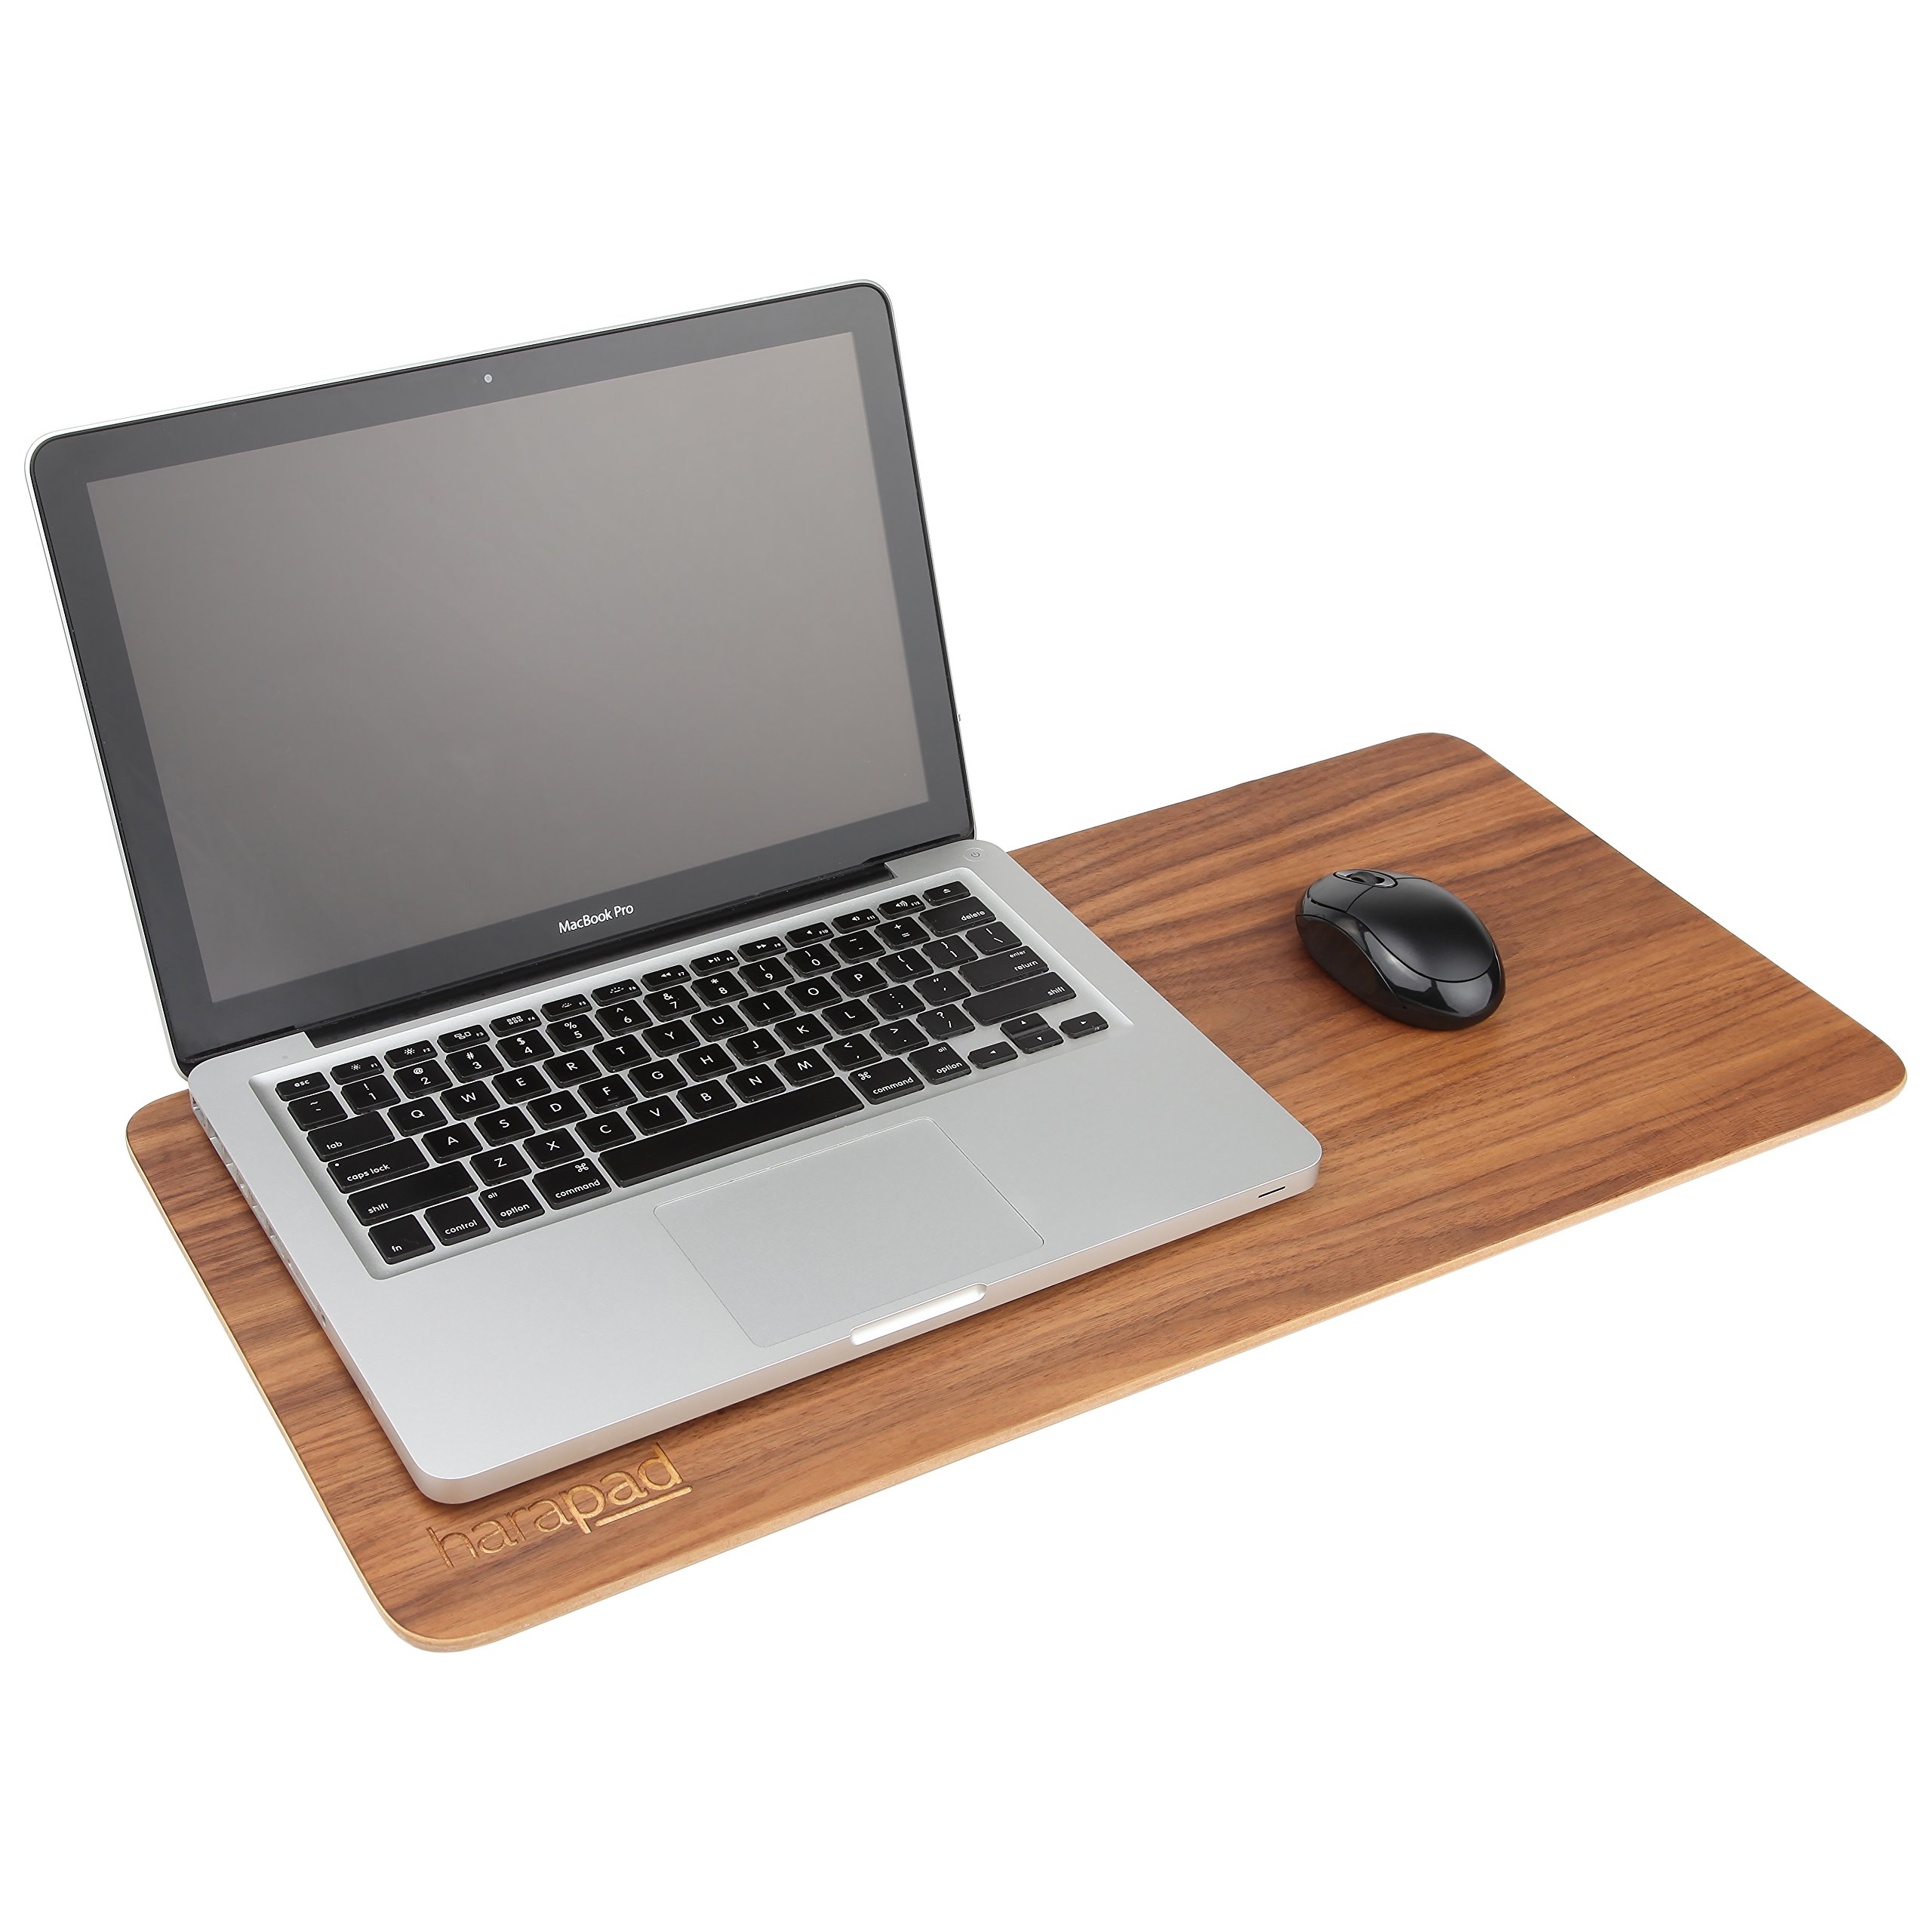 Laptop EMF Pad Providing EMF and Radiation Protection. Real Wood EMF Lapdesk by HARApad